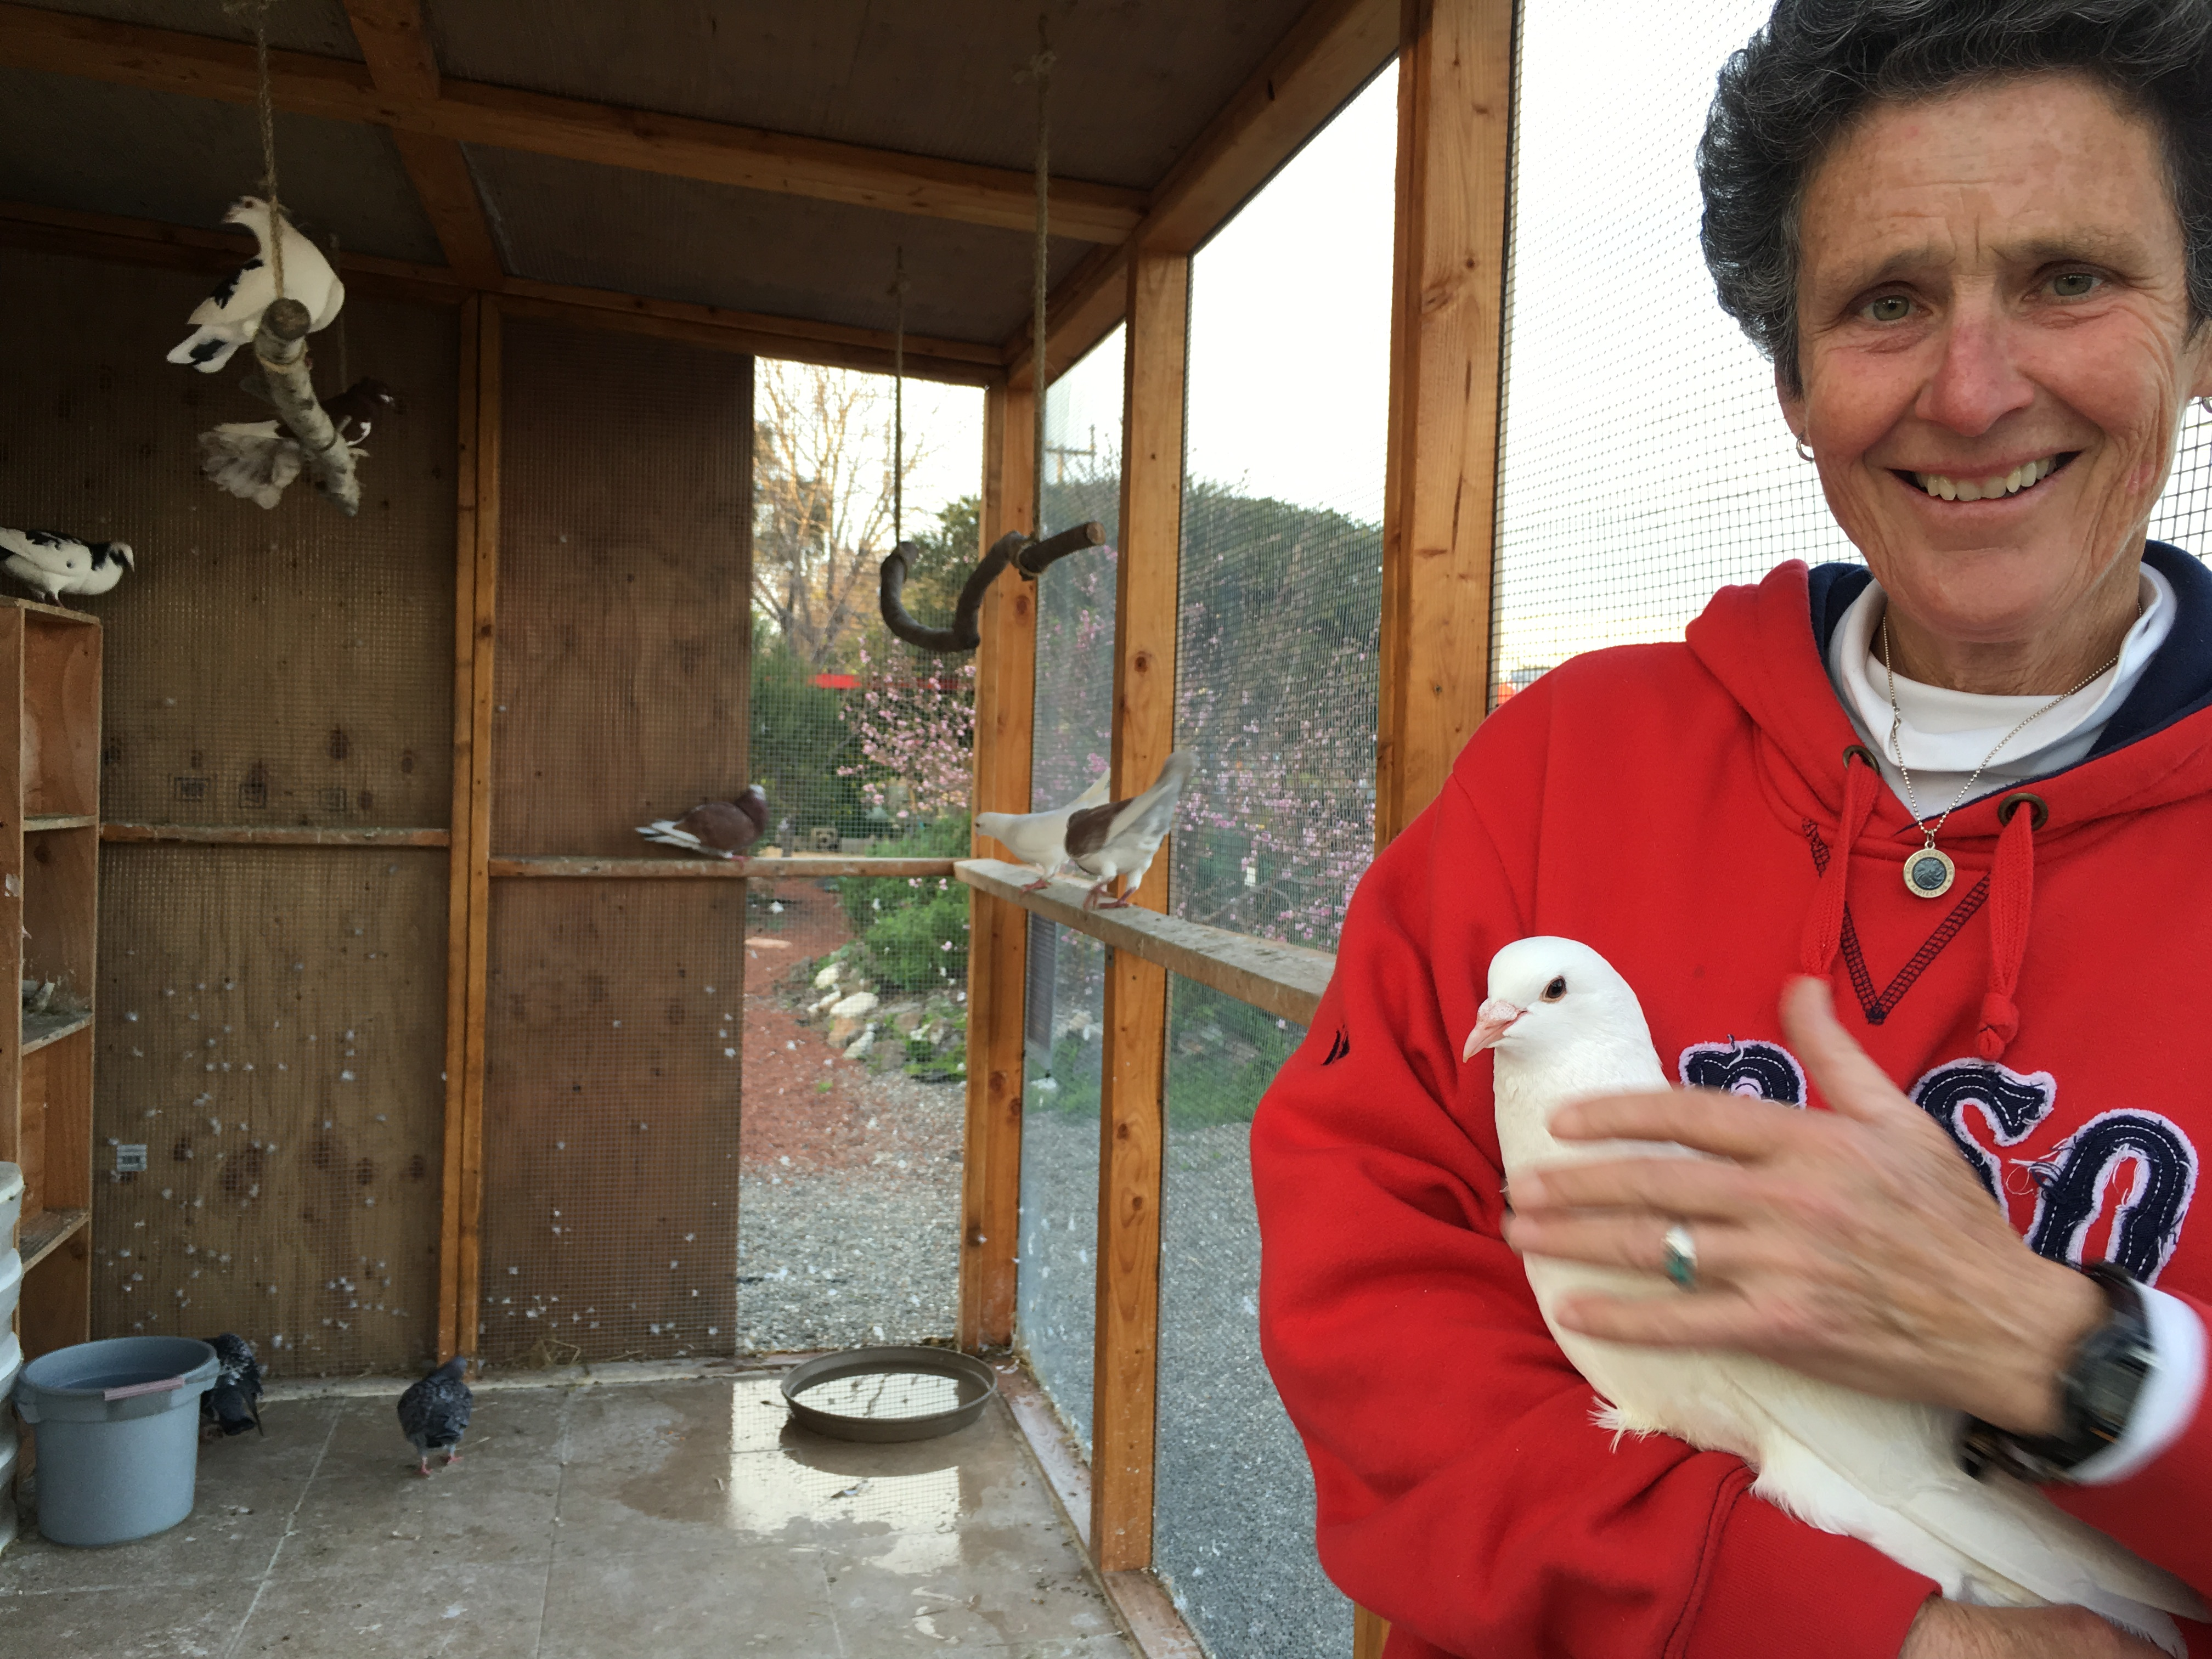 Noodles warmly welcomed to Ploughshares aviary by volunteer Debbie